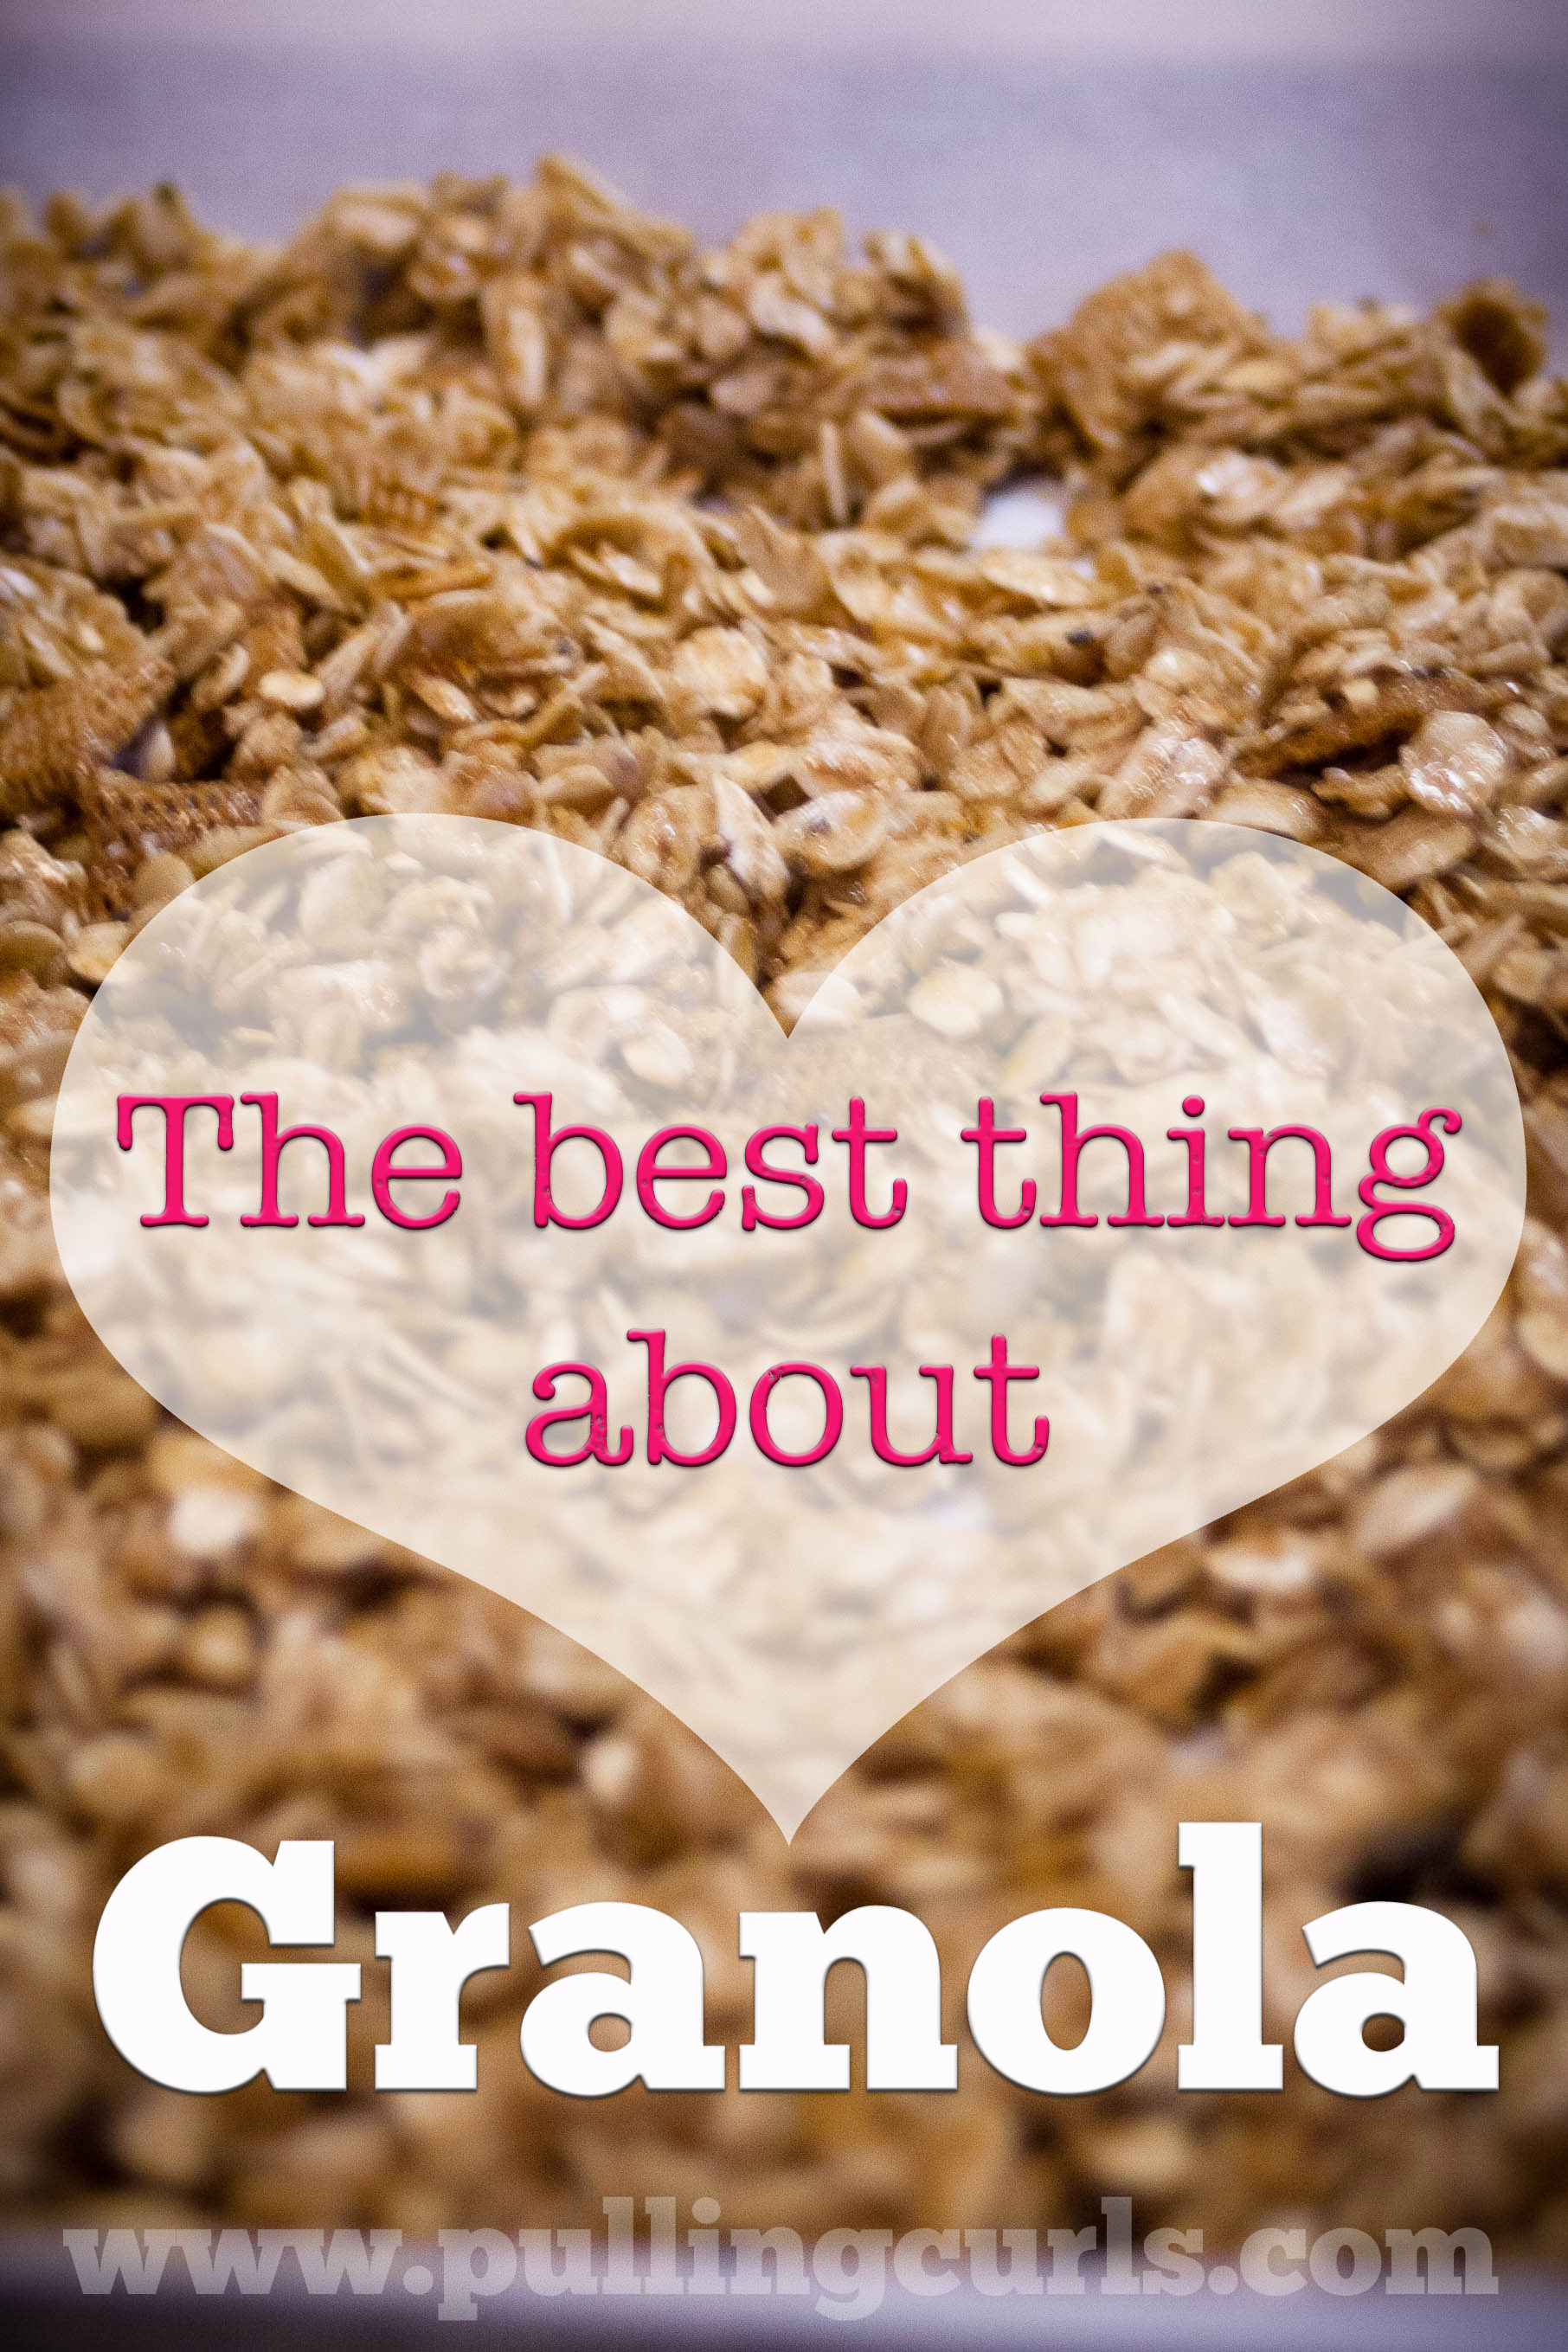 The very best thing about Granola... what do YOU think it is?